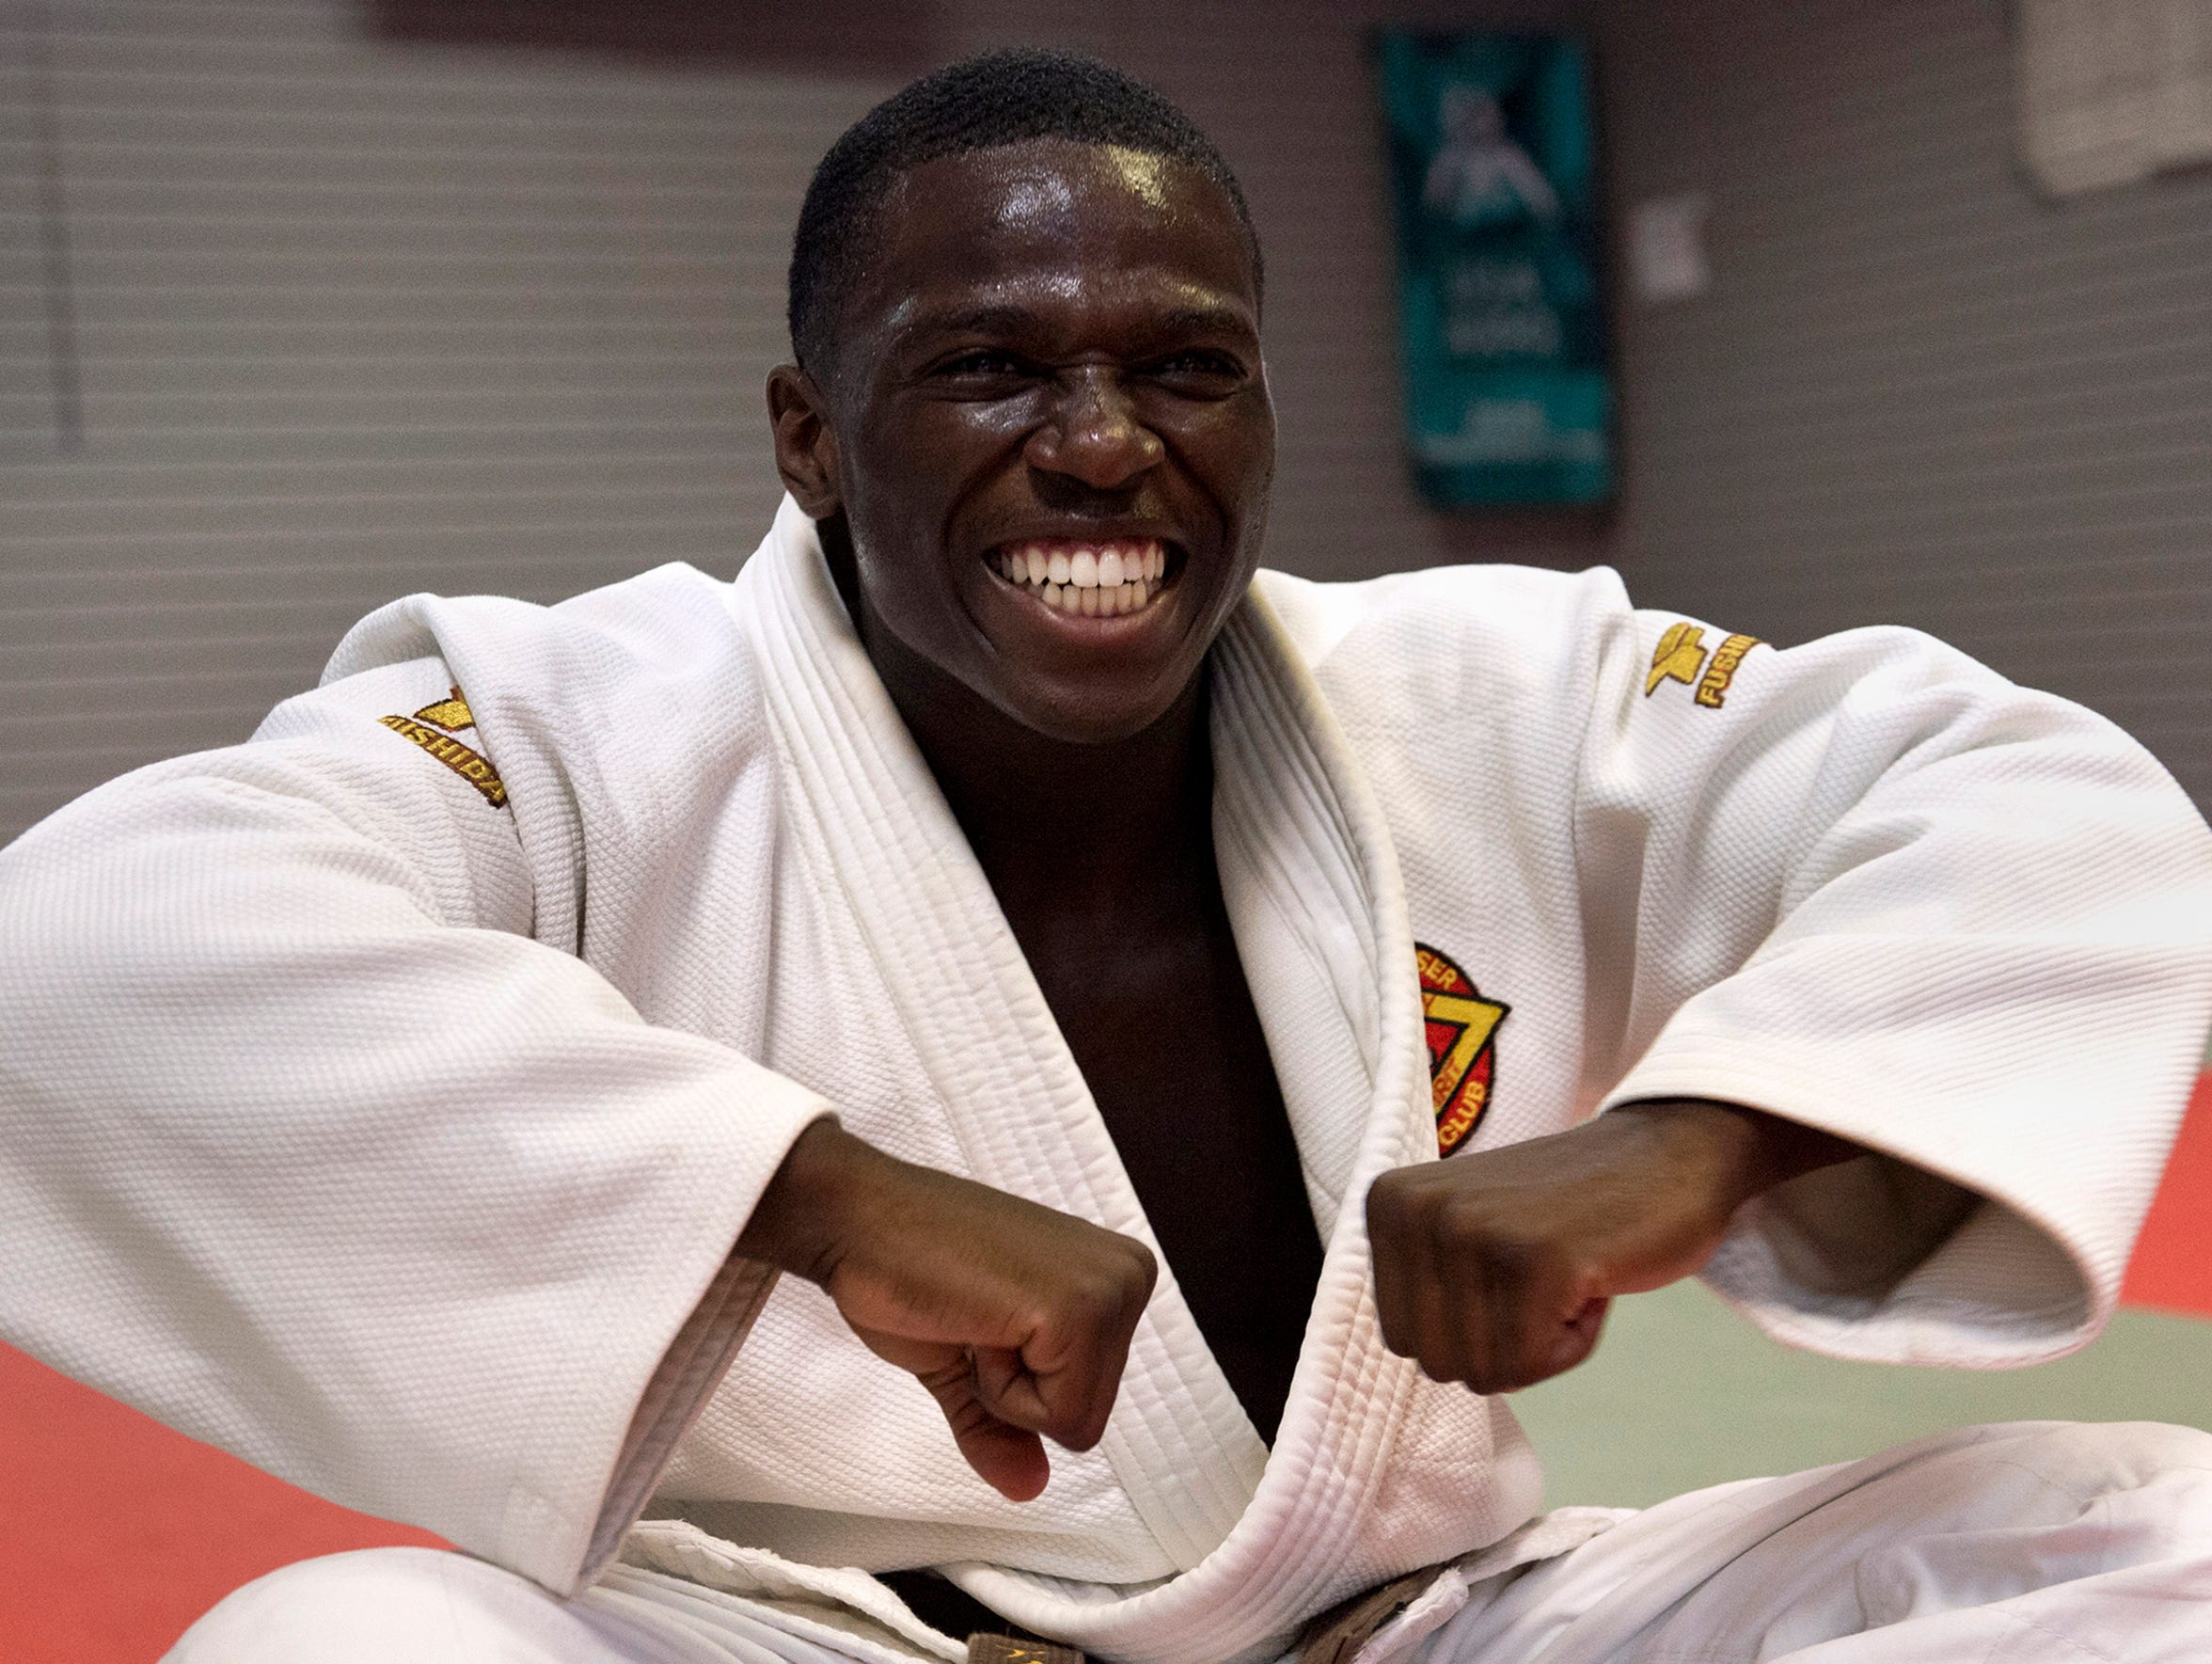 Judo is Darrius Isom's lifeline to a world away from